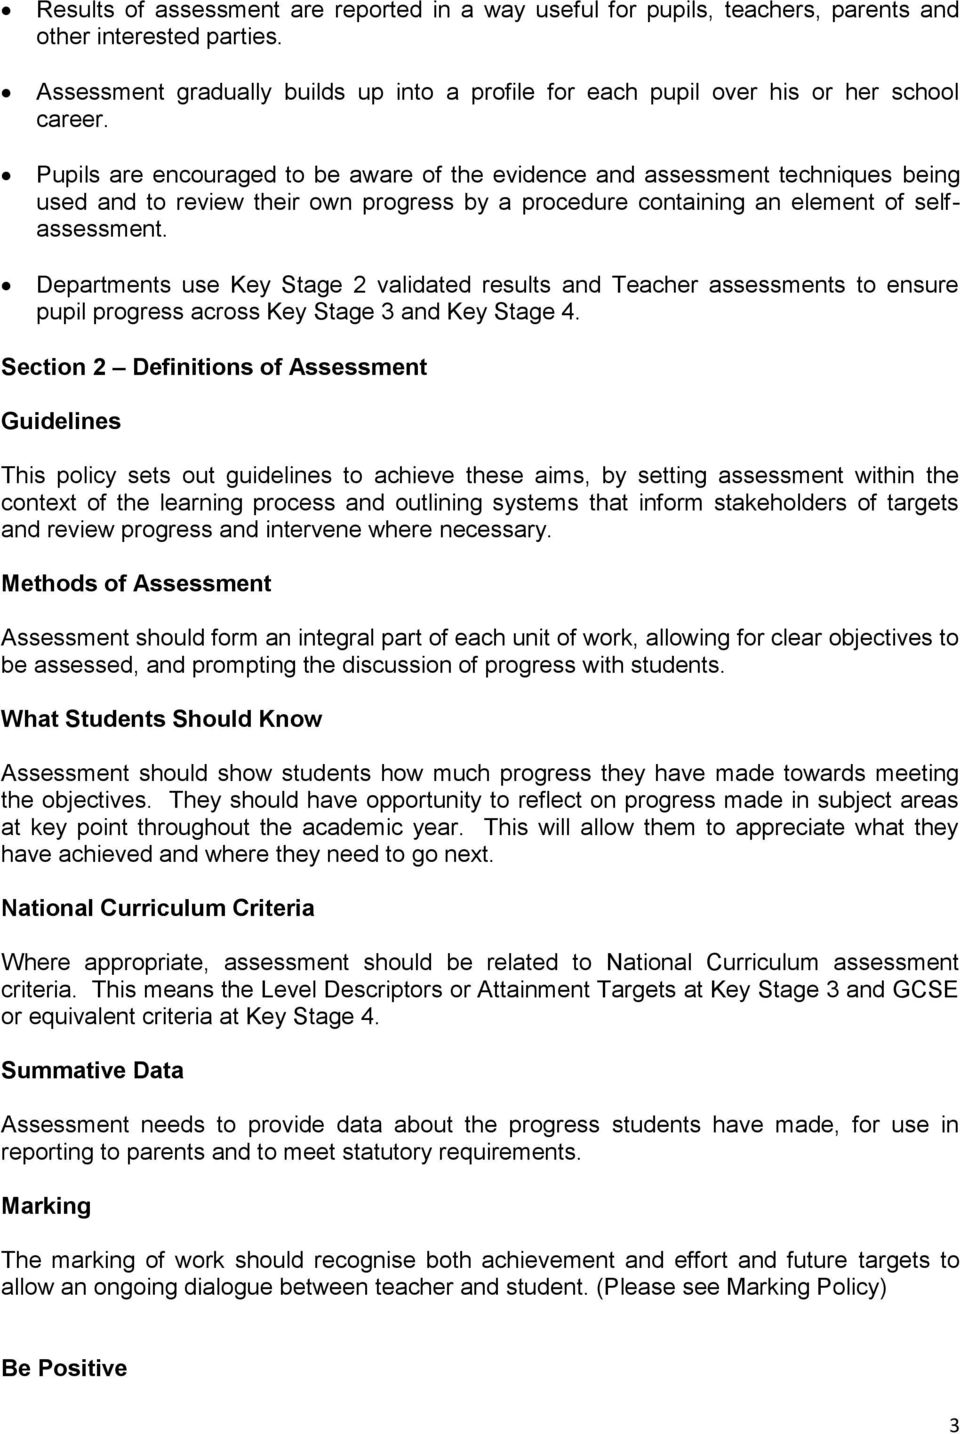 Pupils are encouraged to be aware of the evidence and assessment techniques being used and to review their own progress by a procedure containing an element of selfassessment.